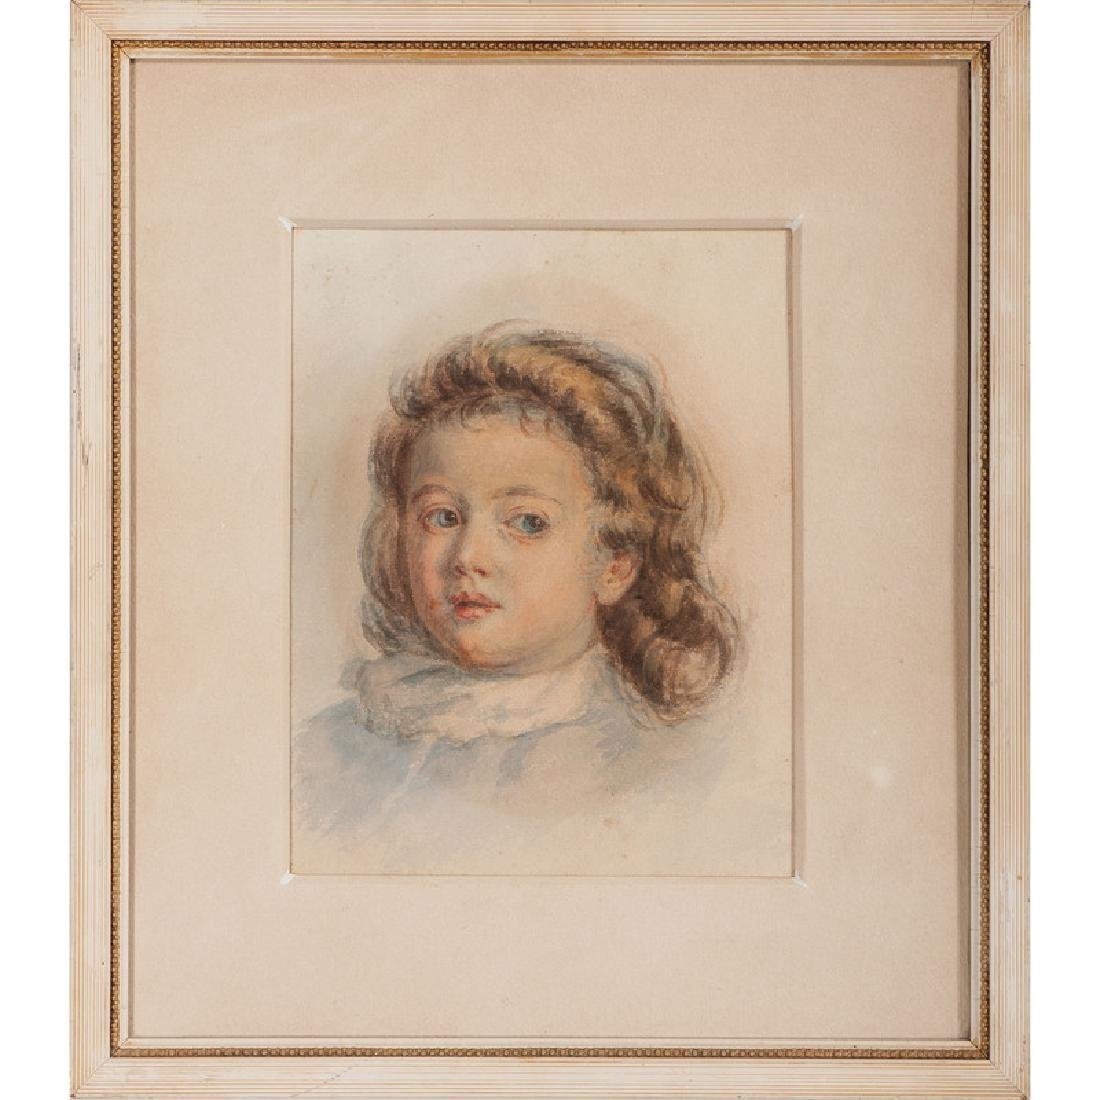 Framed Watercolor of a Young Girl, Attributed to